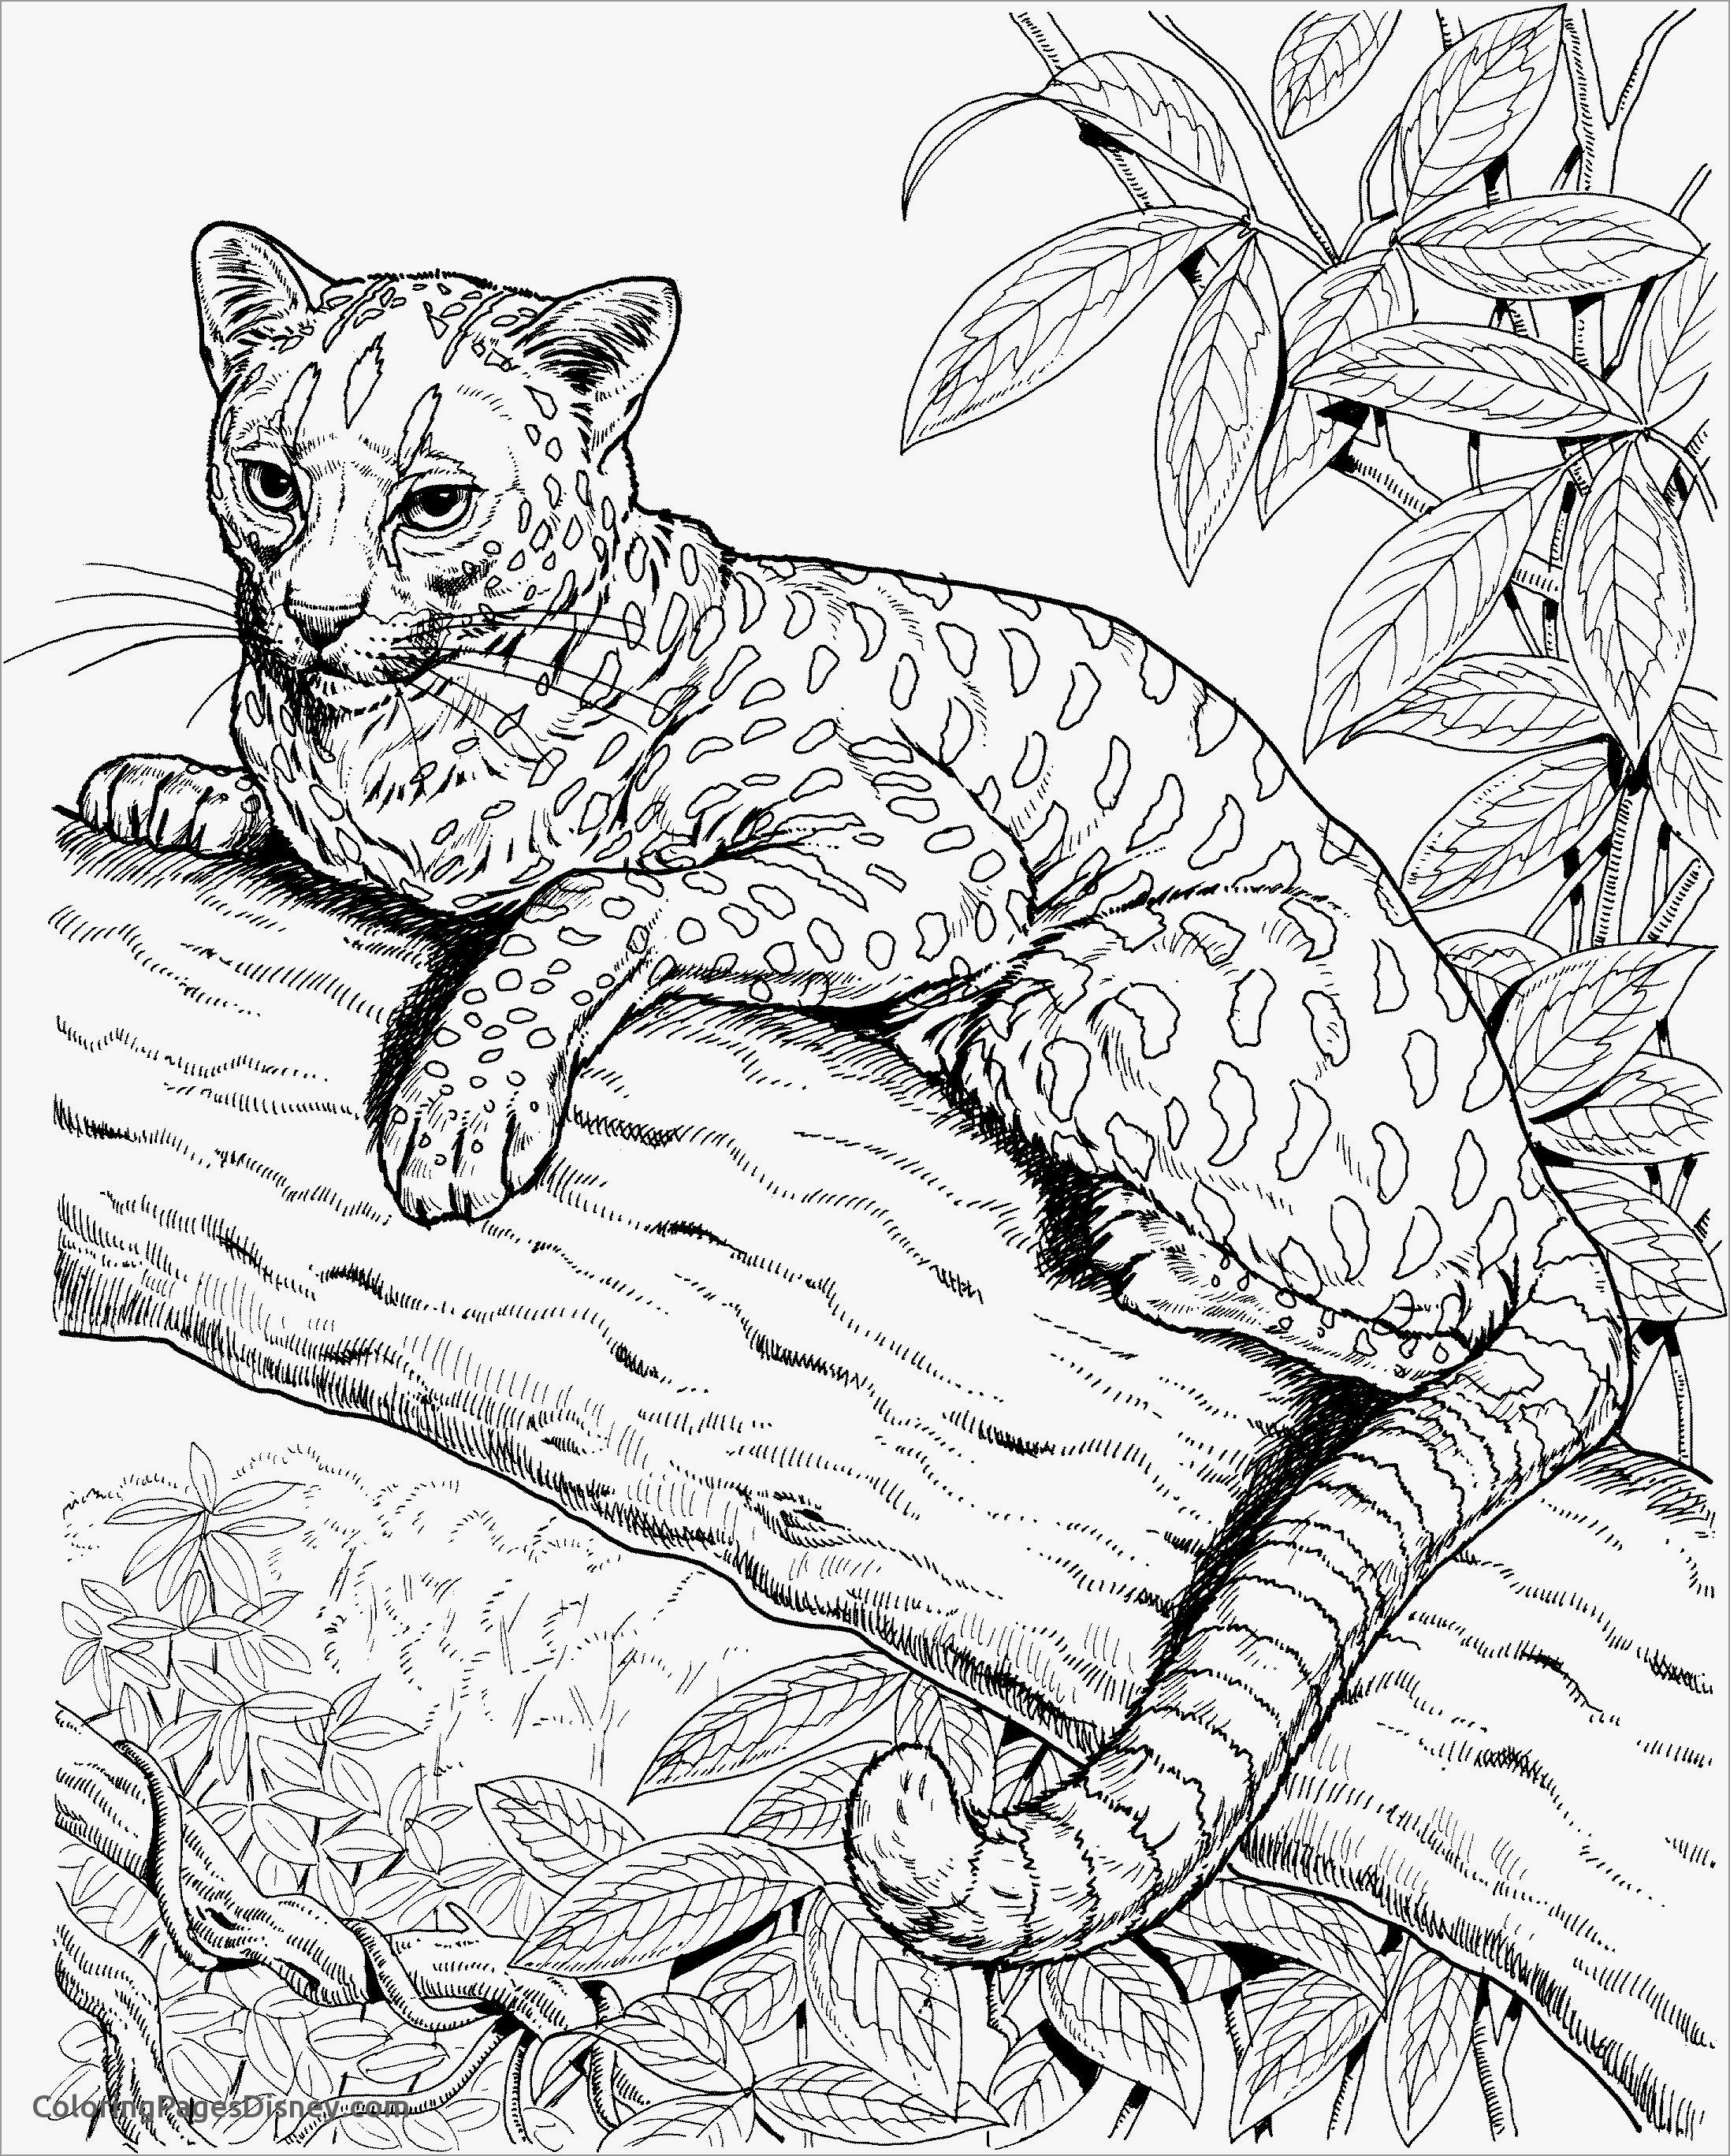 Realistic Cheetah Coloring Page Cat Coloring Page Mermaid Coloring Pages Animal Coloring Pages